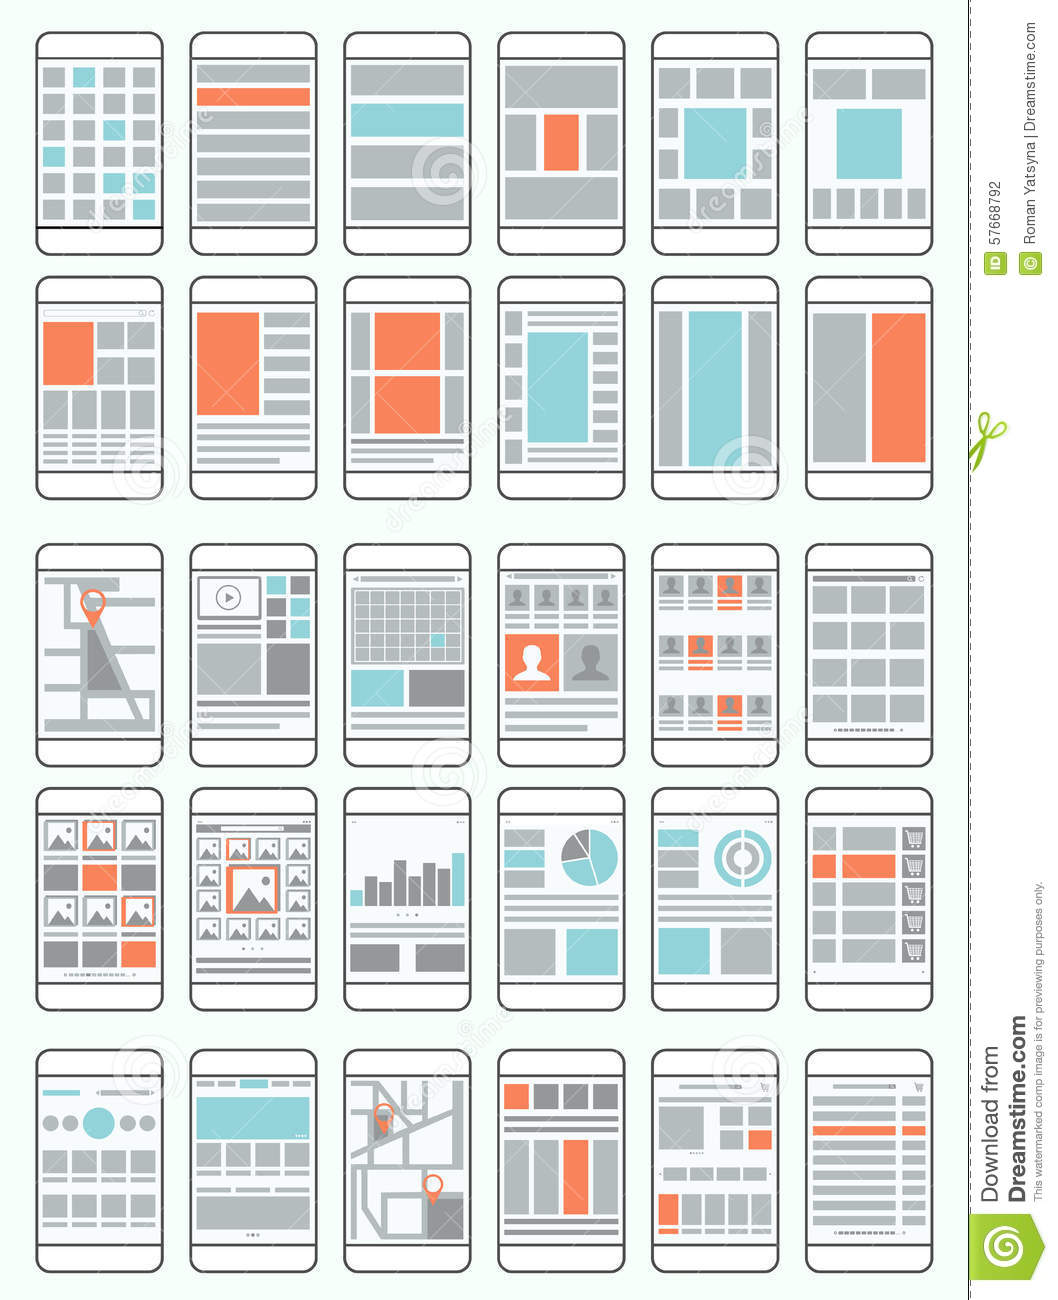 Mobile phone flowcharts, wireframes